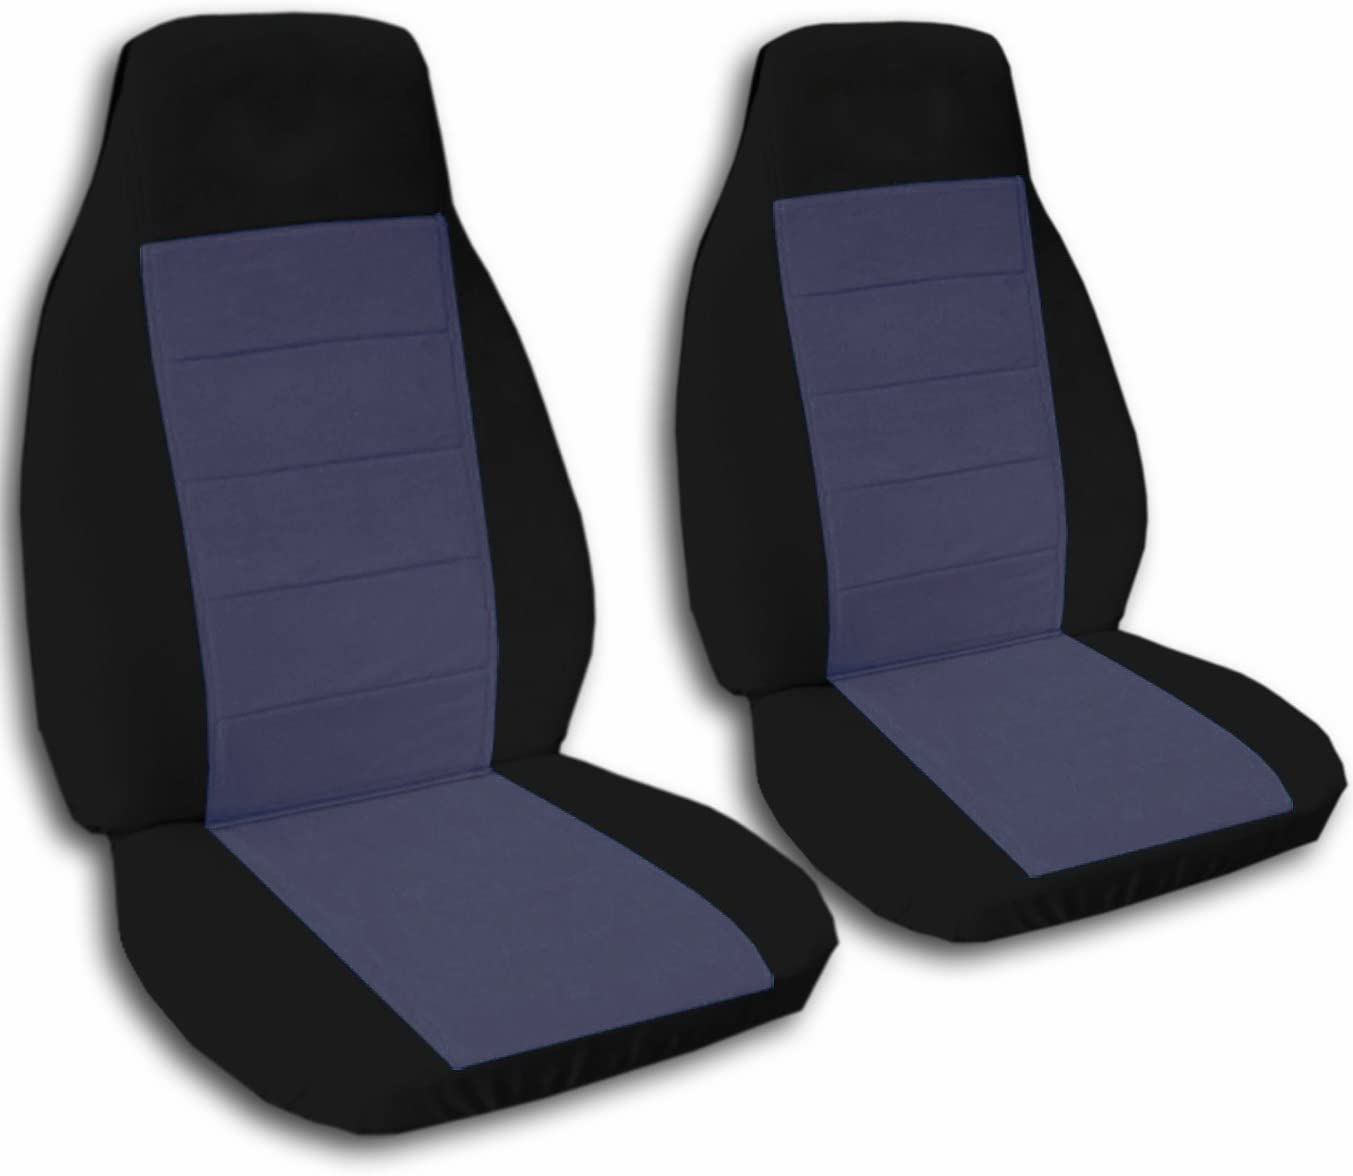 Totally Covers Compatible with 1992-1998 Ford F-150 F-250 F-350 Two-Tone Truck Seat Covers (Captains Chairs/Buckets) w/wo Armrests: Black & Blue Gray (21 Colors) F-Series F150 F250 F350